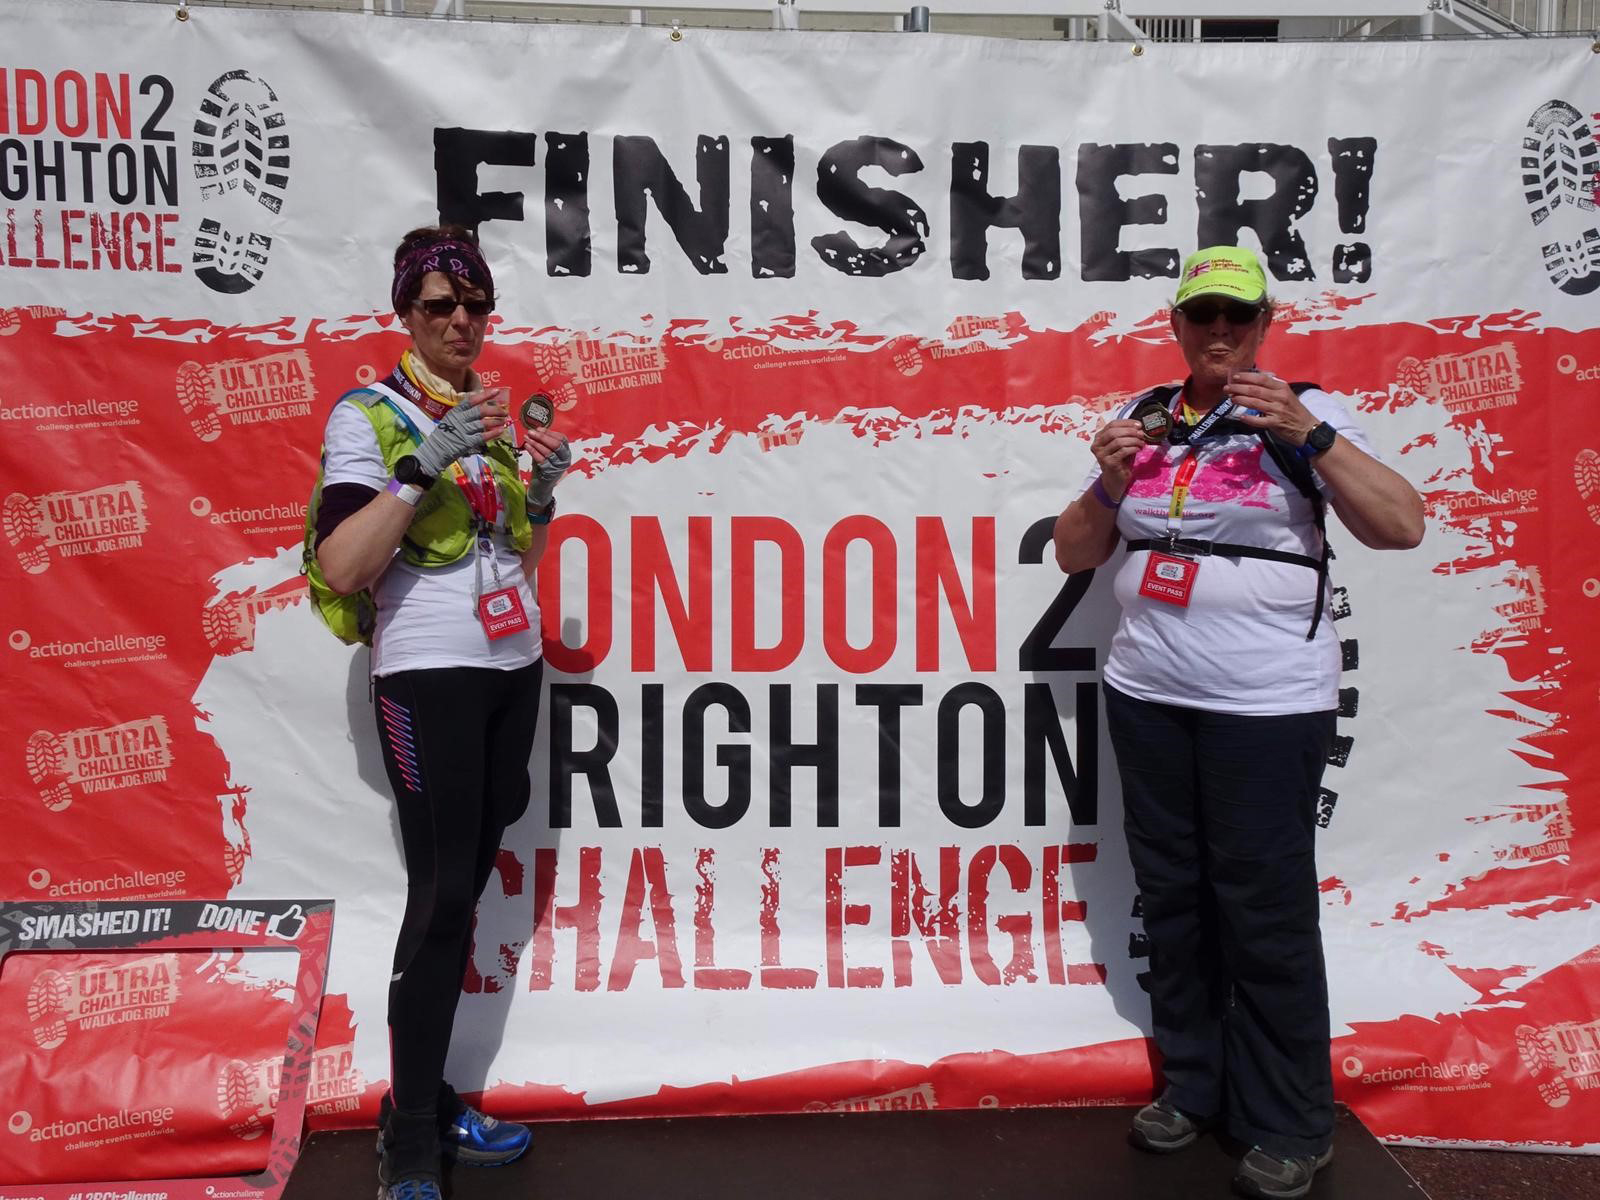 London to Brighton finish - Julie and Jane